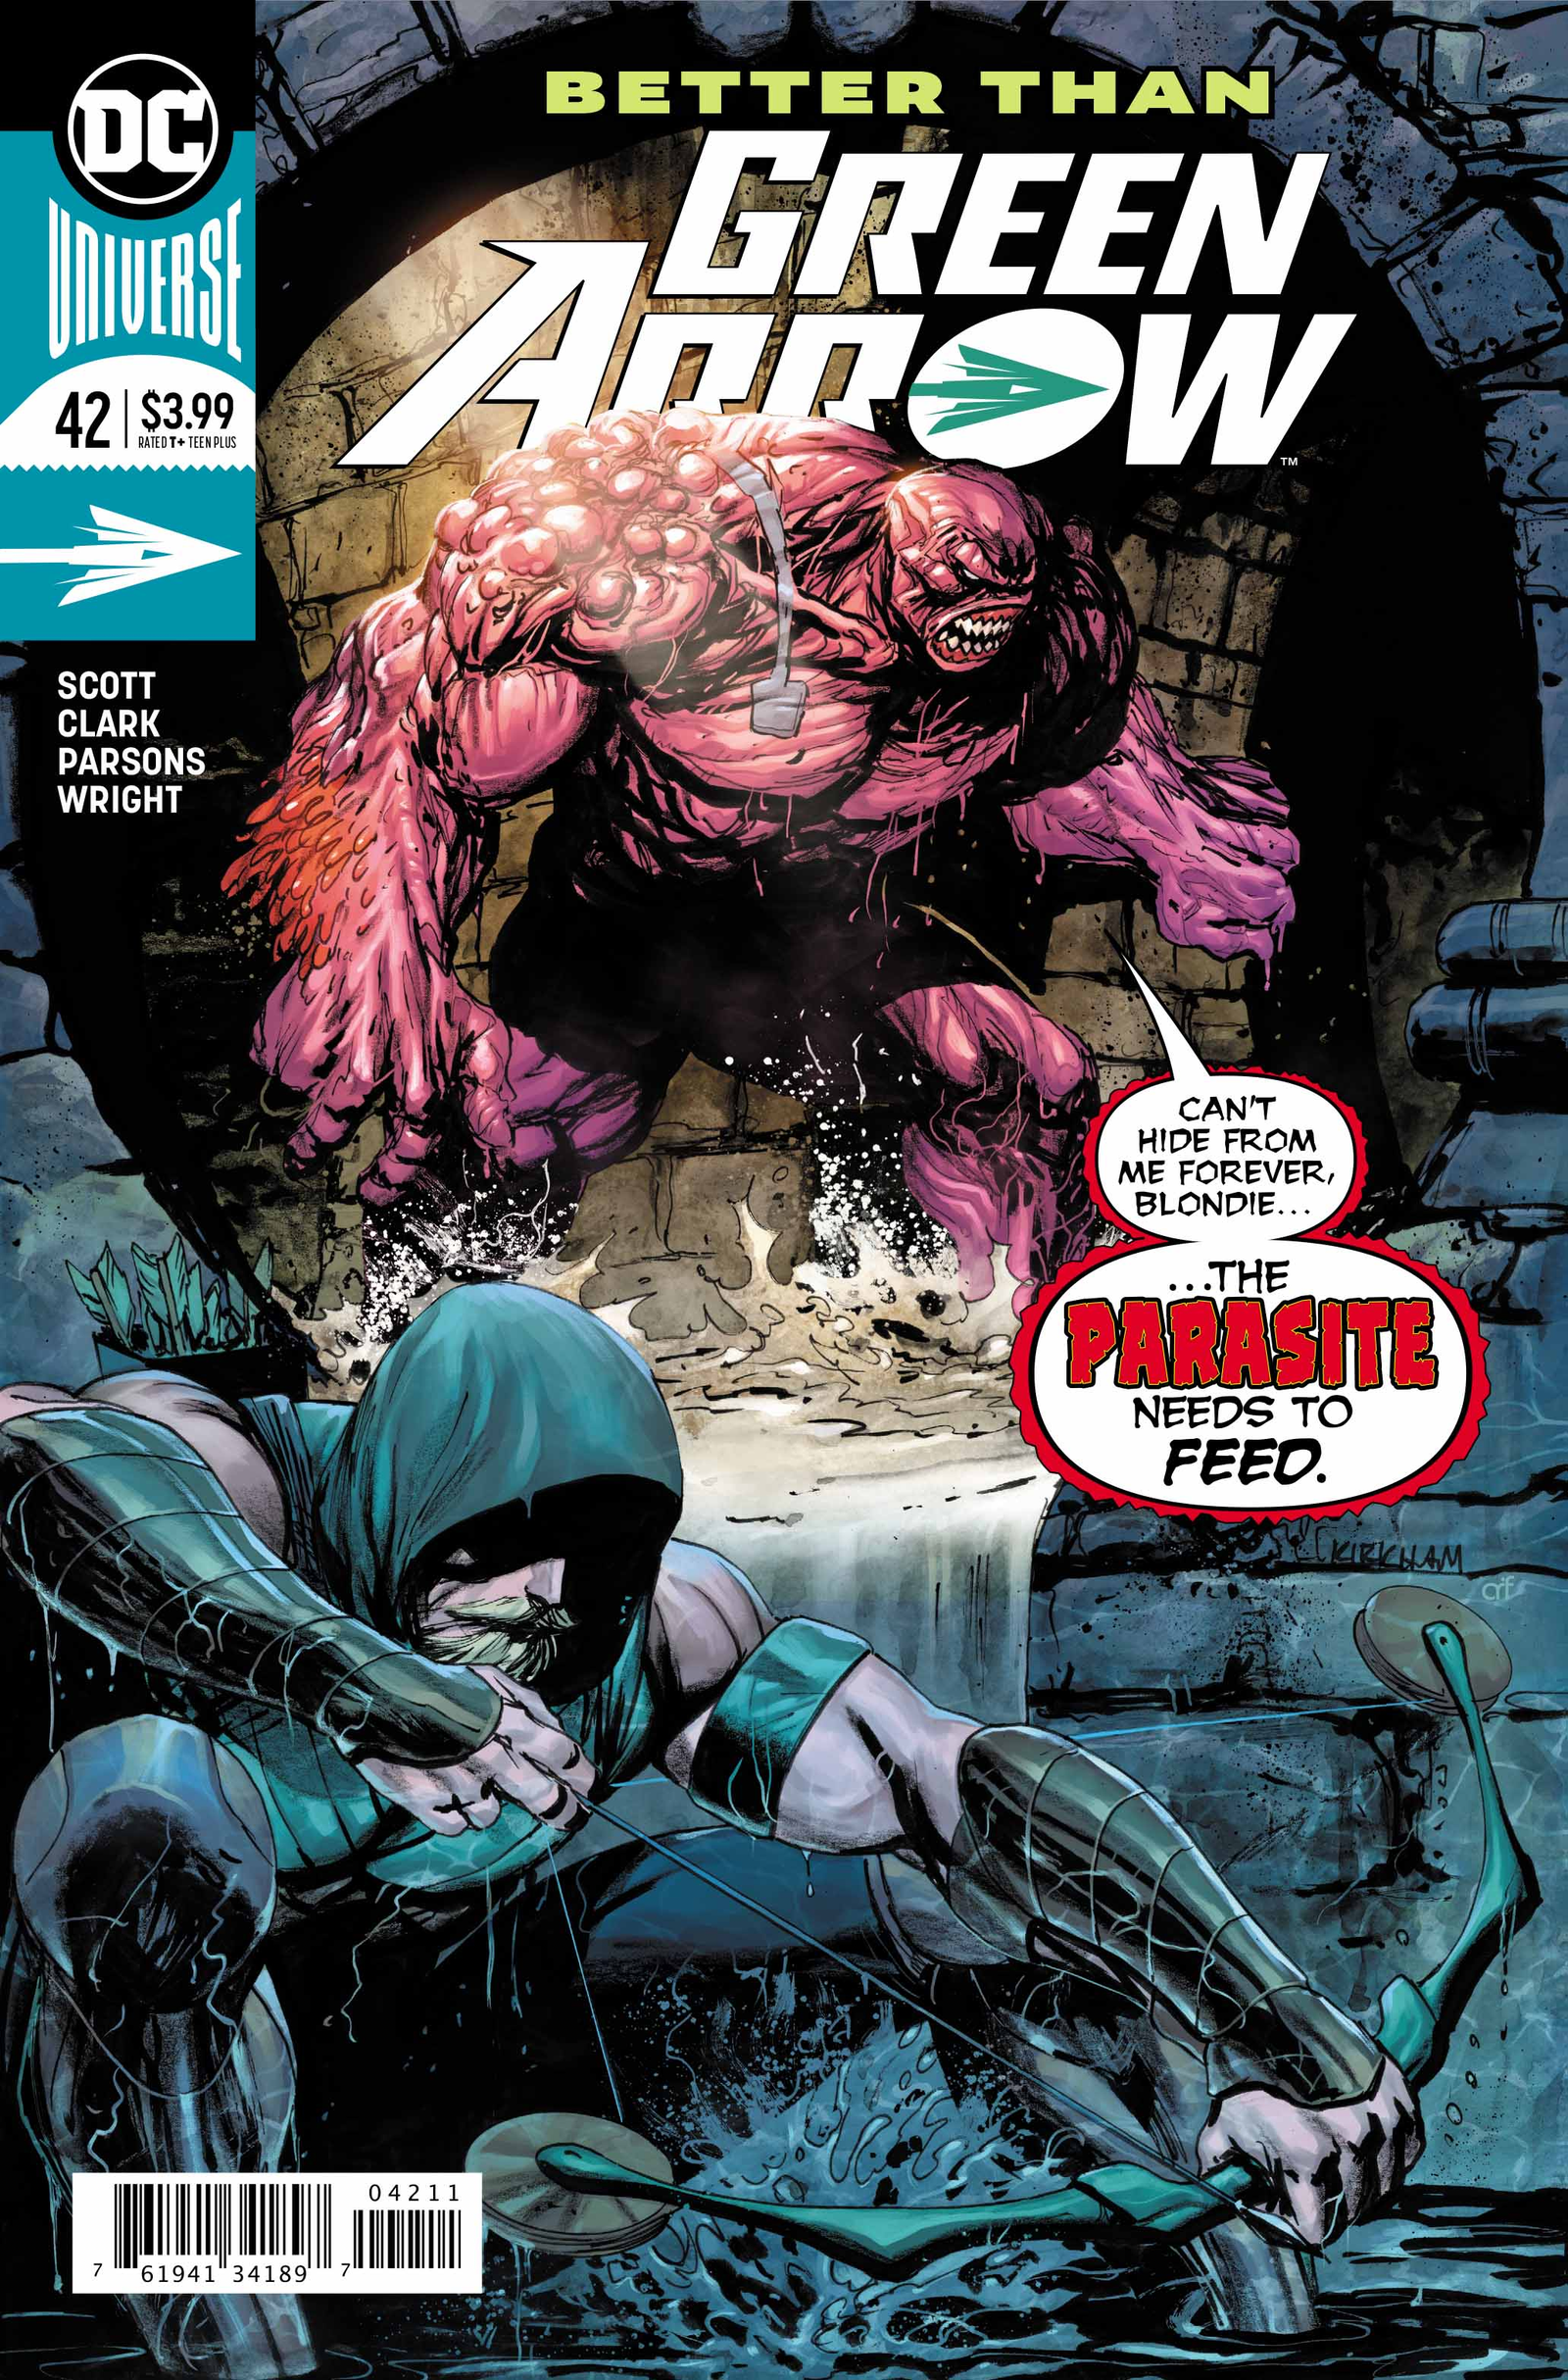 Cover by Tyler Kirkham and Arif Prianto